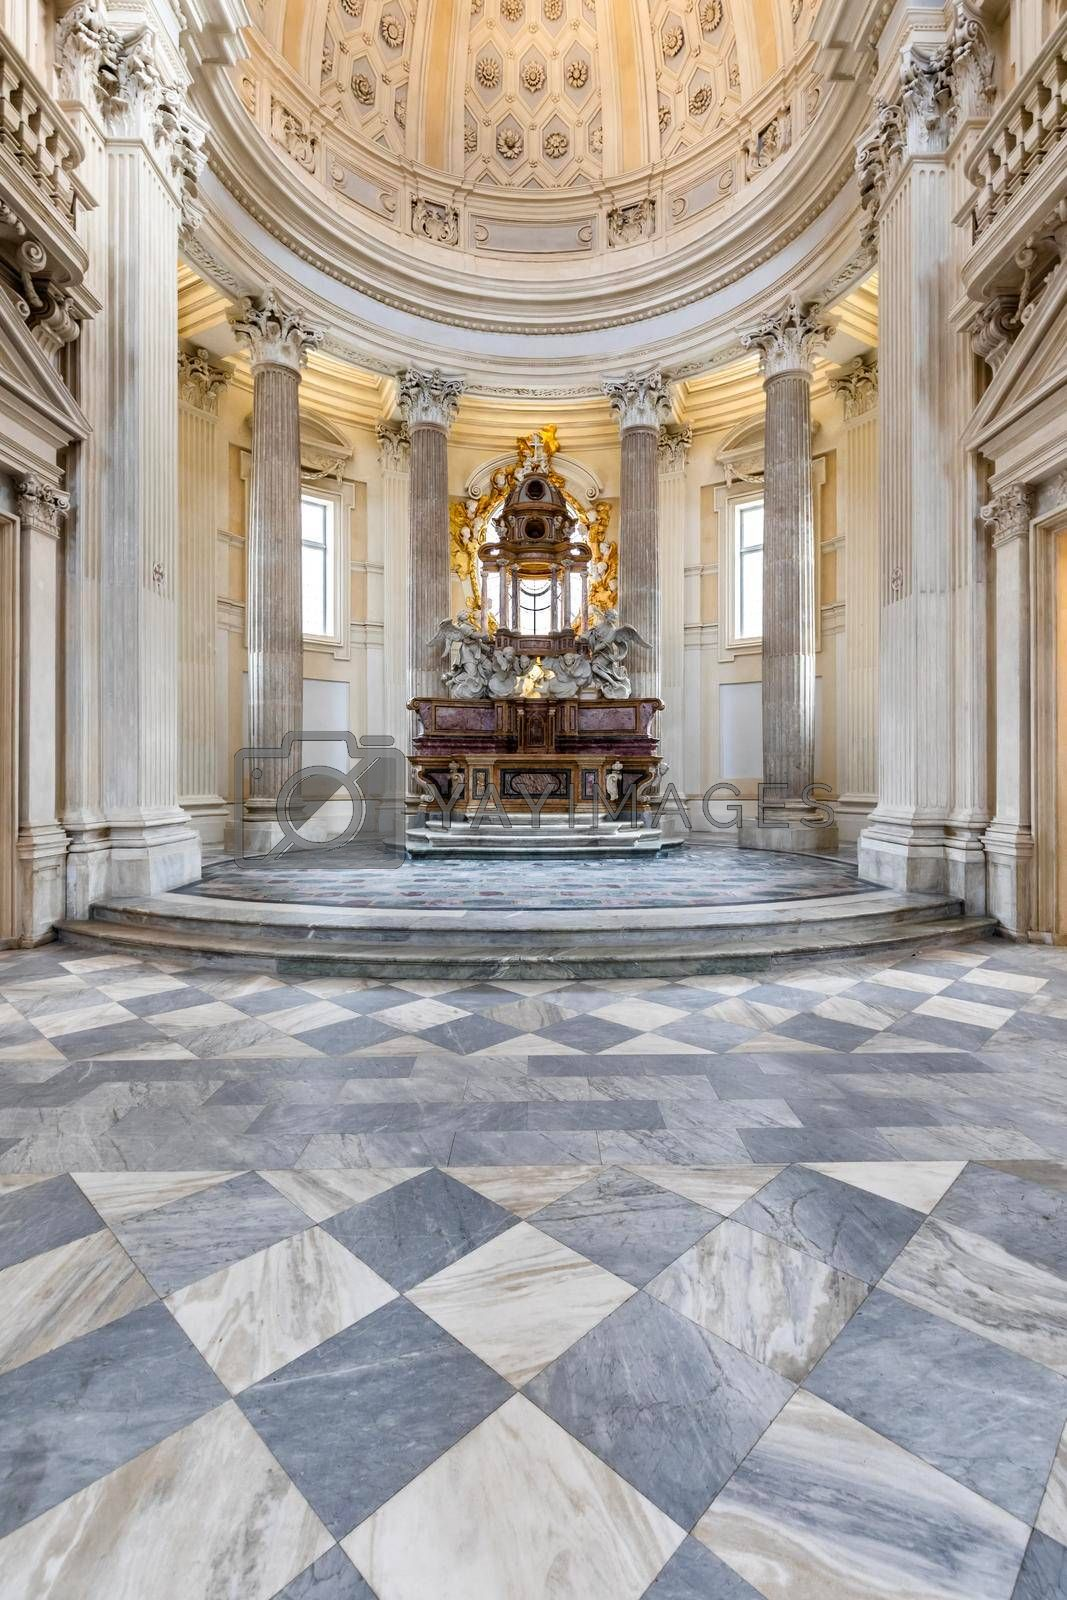 Royalty free image of Sacred catholic altar in Baroque style and cupola. Day light - Italy by Perseomedusa